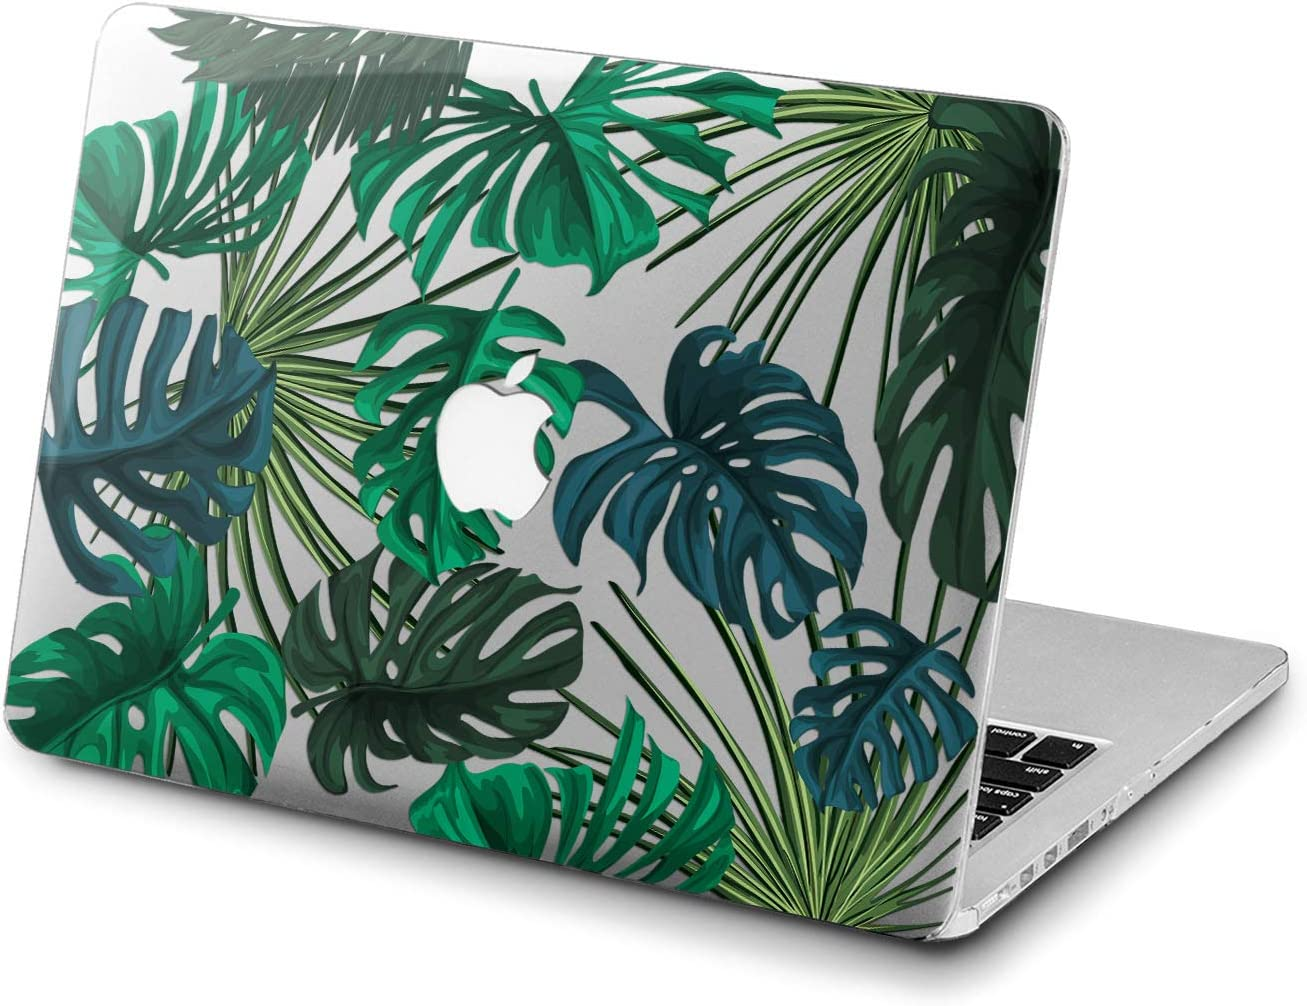 MacBook Pro Shell Case Cactus Flowers Green Plant Healthy MacBook Air Case Multi-Color /& Size Choices/10//12//13//15//17 Inch Computer Tablet Briefcase Carrying Bag